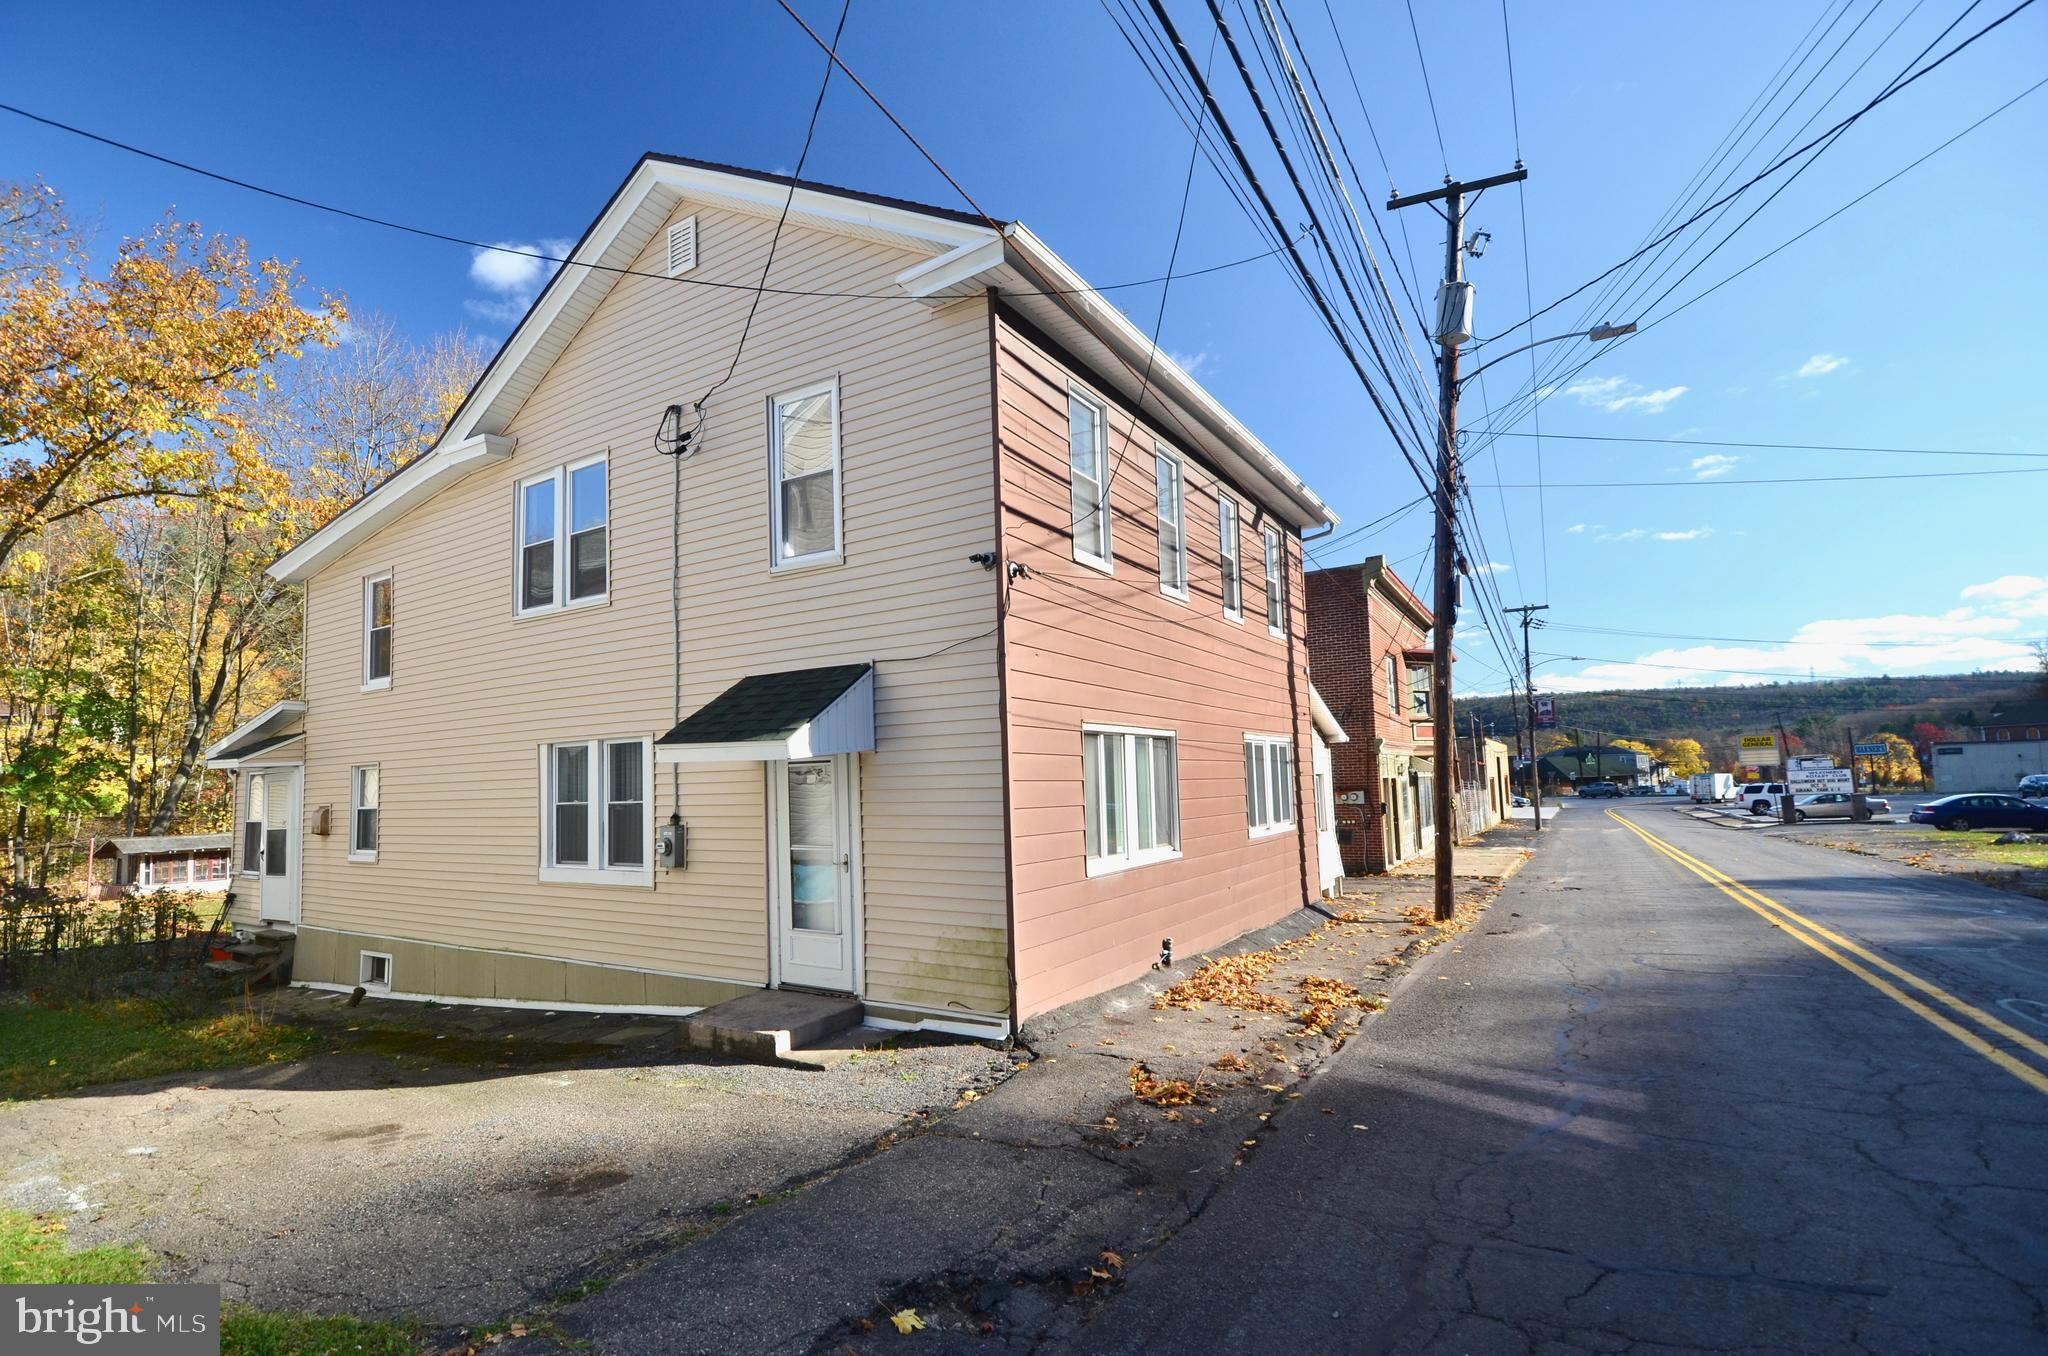 45 W MAIN STREET, WEATHERLY, PA 18255